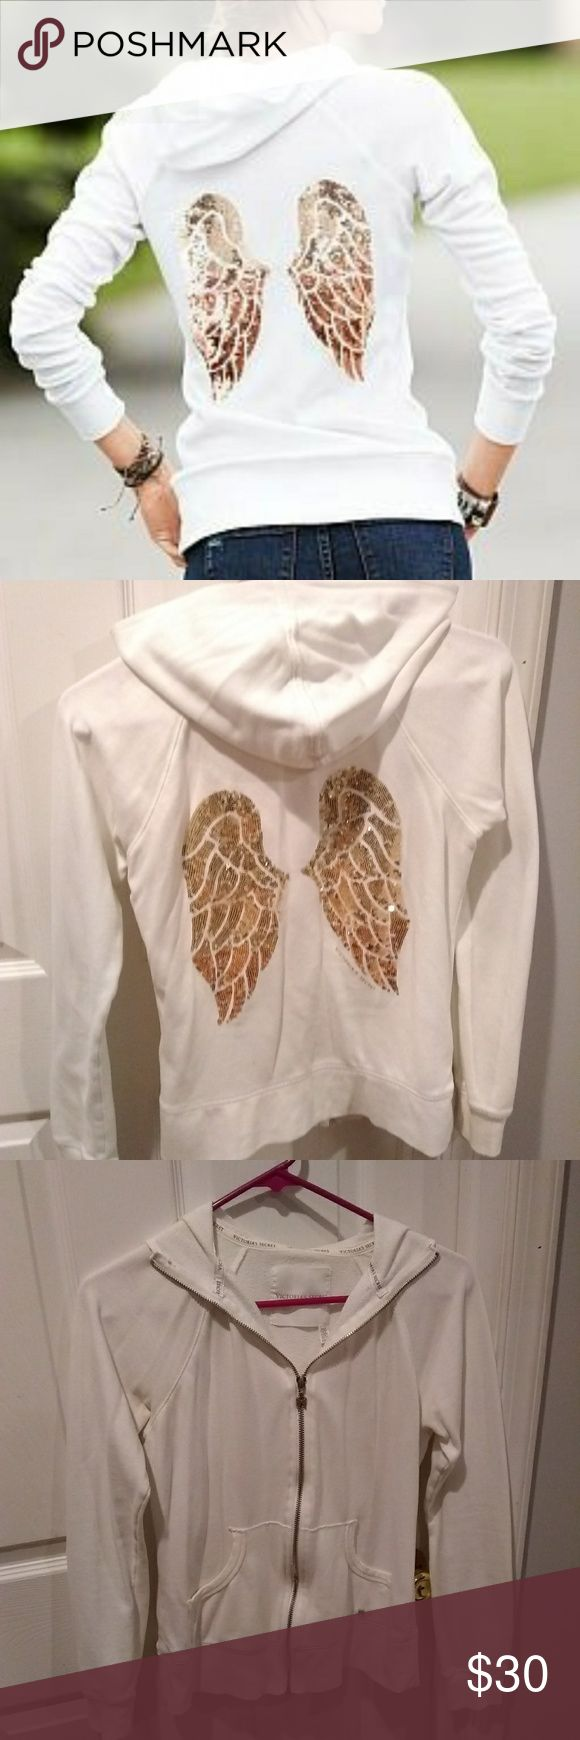 Victoria's Secret Angels white zip up hoodie Great condition only worn a few times! Small tear on the right bottom seam, smaller than my pinky. Originally $50. Gold ombre angel wings on the back and Angel zipper and detail on pocket. Super cute! Size S. Victoria's Secret Jackets & Coats